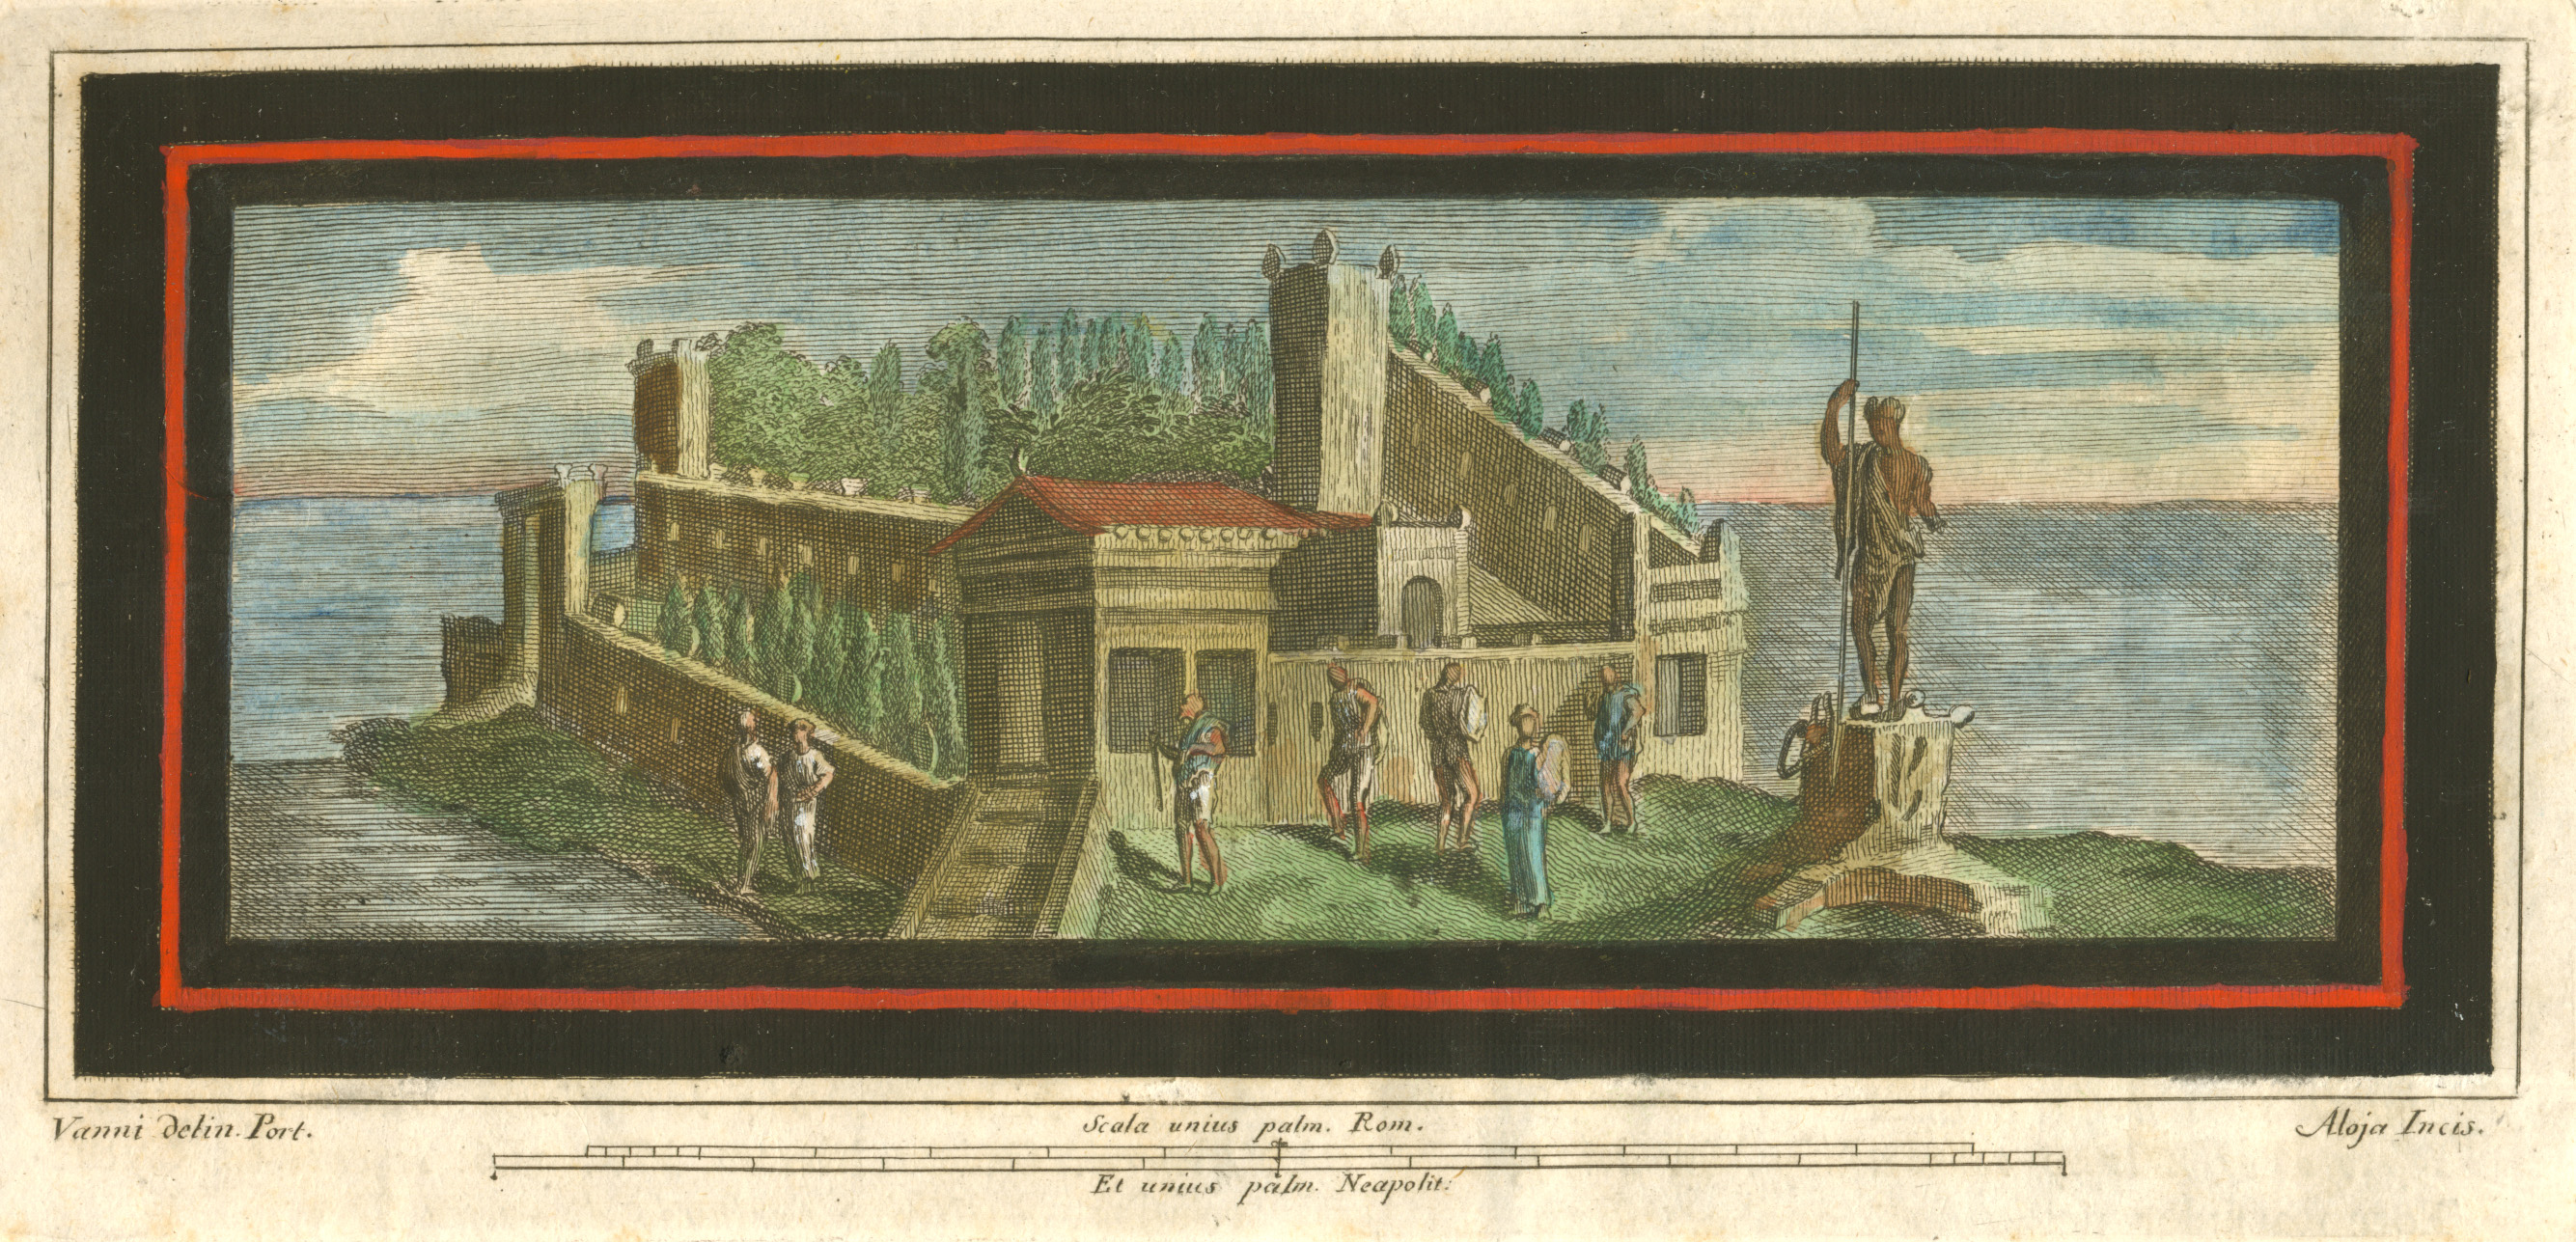 Grand building on a headland. Herculaneum Antiquities c1757